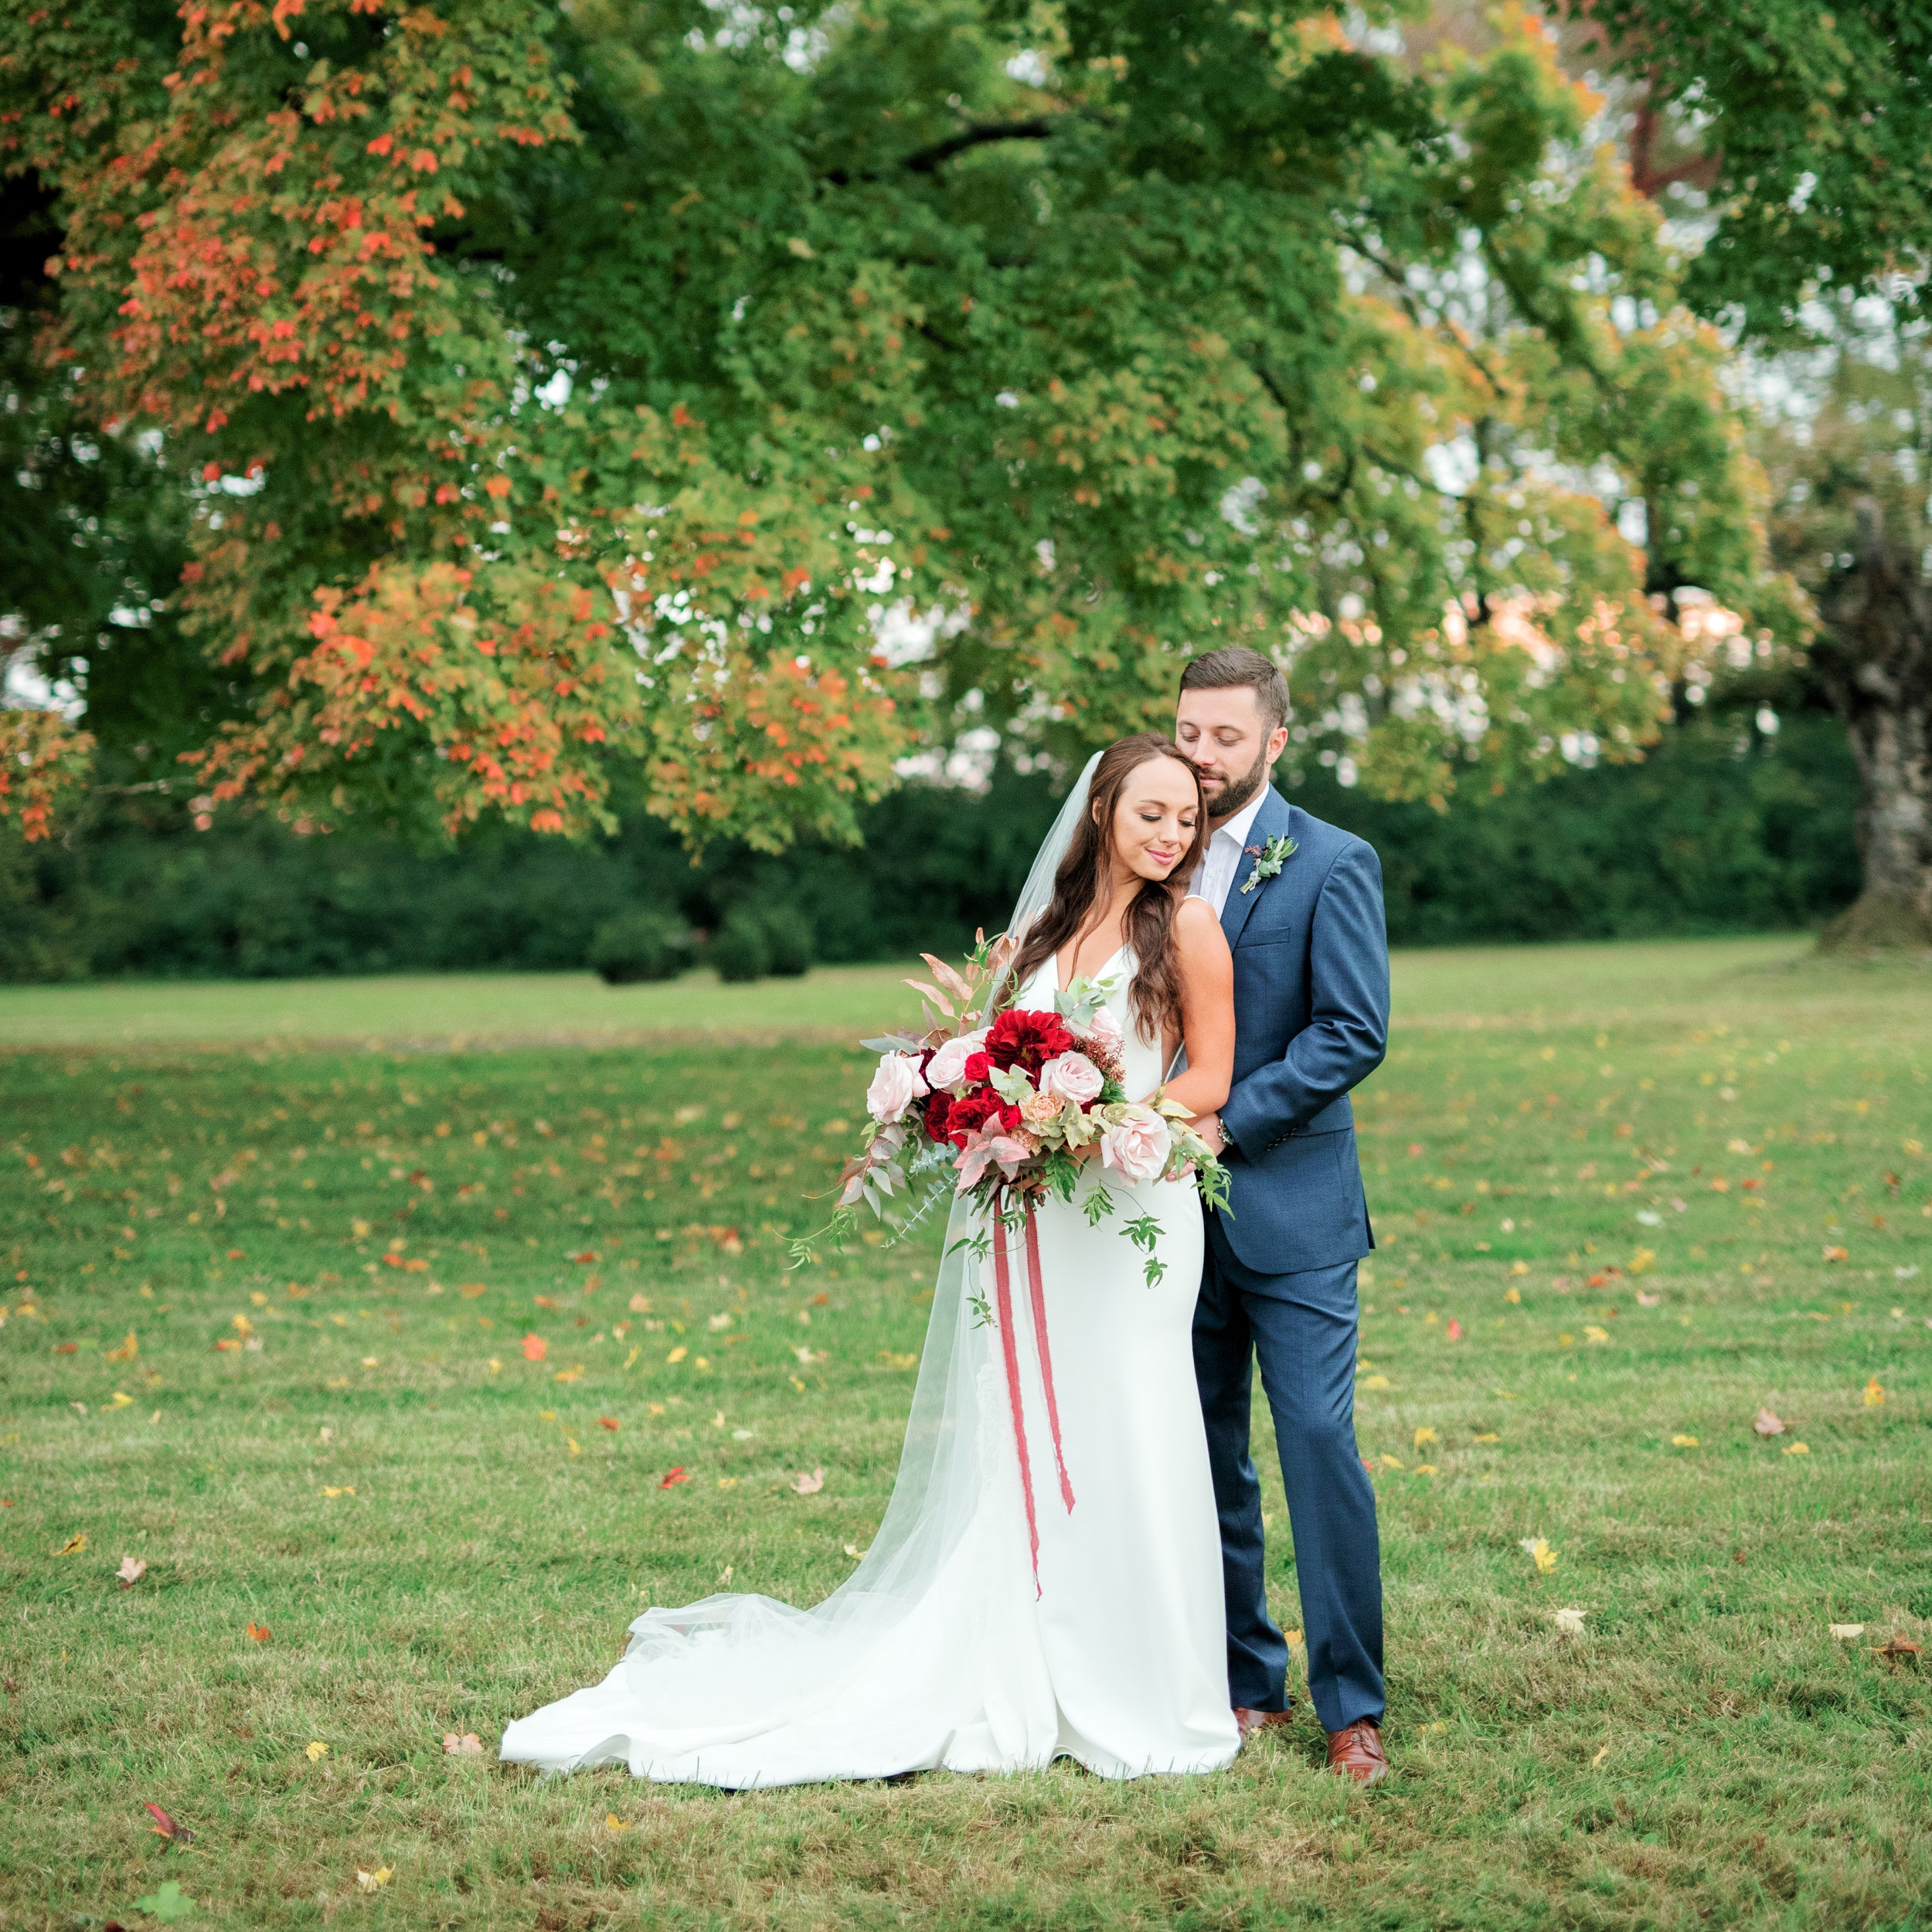 Murfreesboro Wedding - Coston & Co. - Wedding Planner